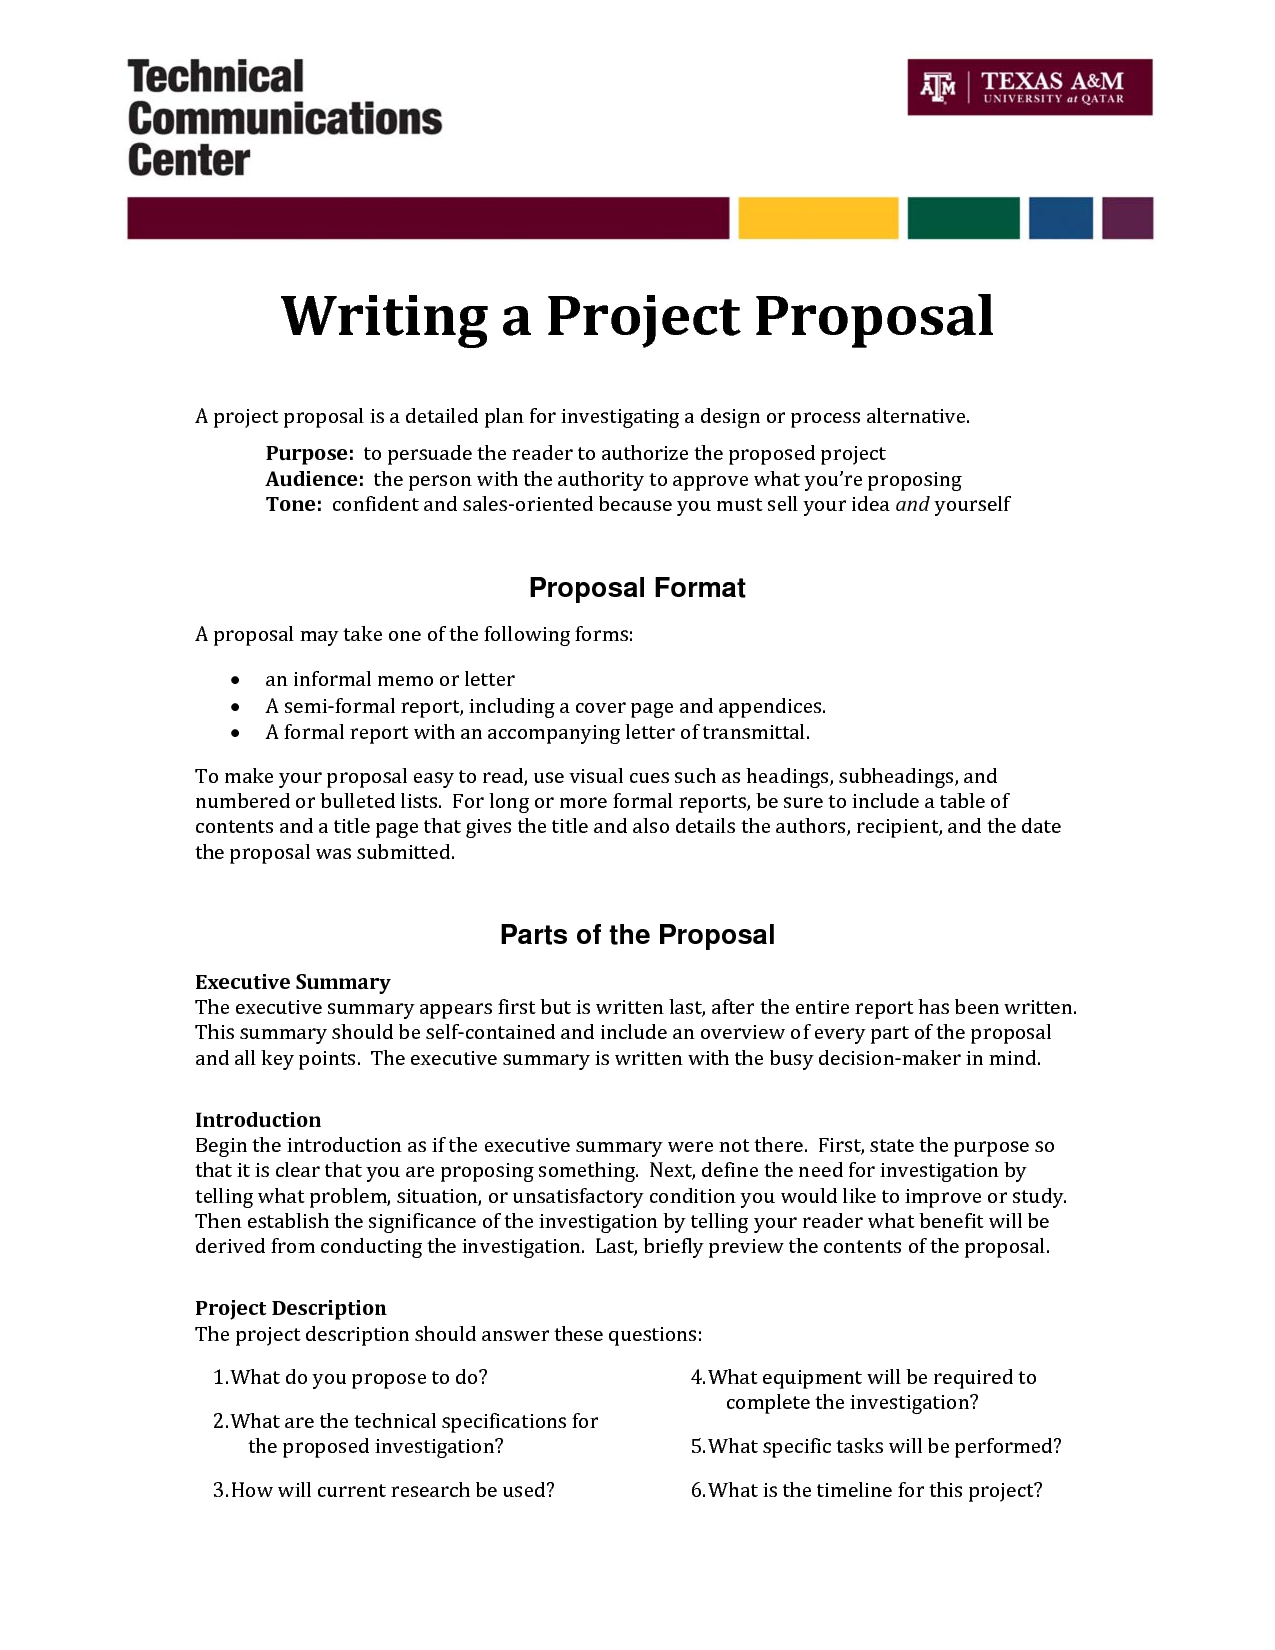 Professional Project Proposal Writing Service Online Project – How to Write an Event Proposal